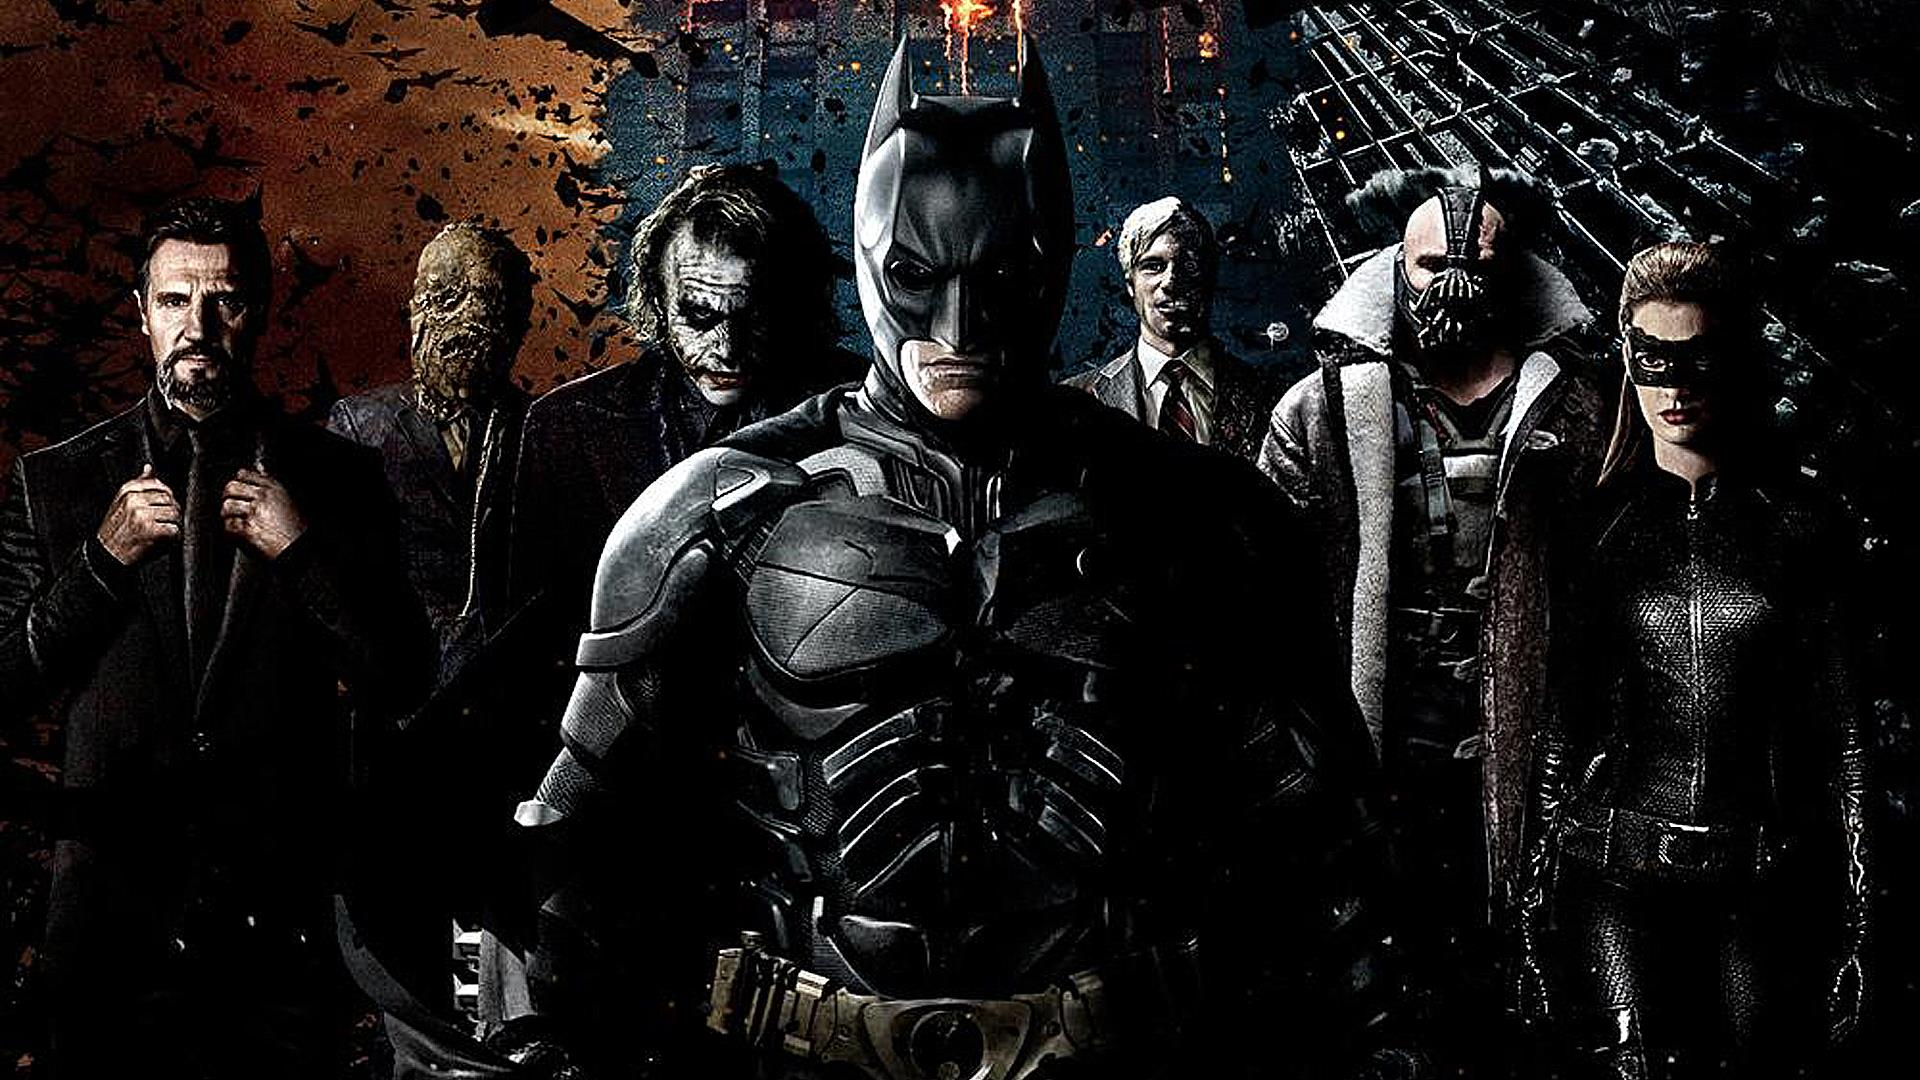 The Dark Knight Rises Wallpapers Top Free The Dark Knight